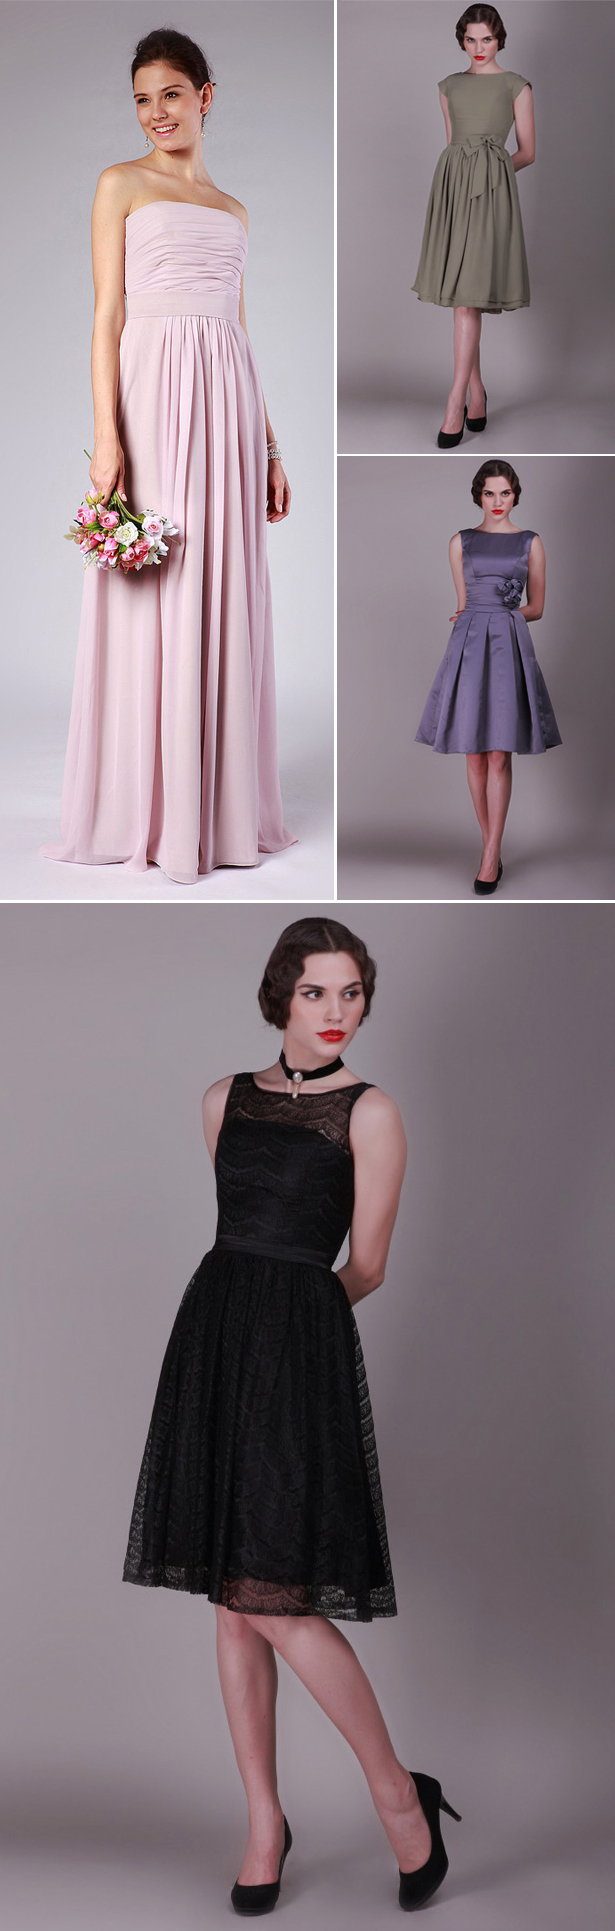 For Her and For Him Bridesmaid Dresses